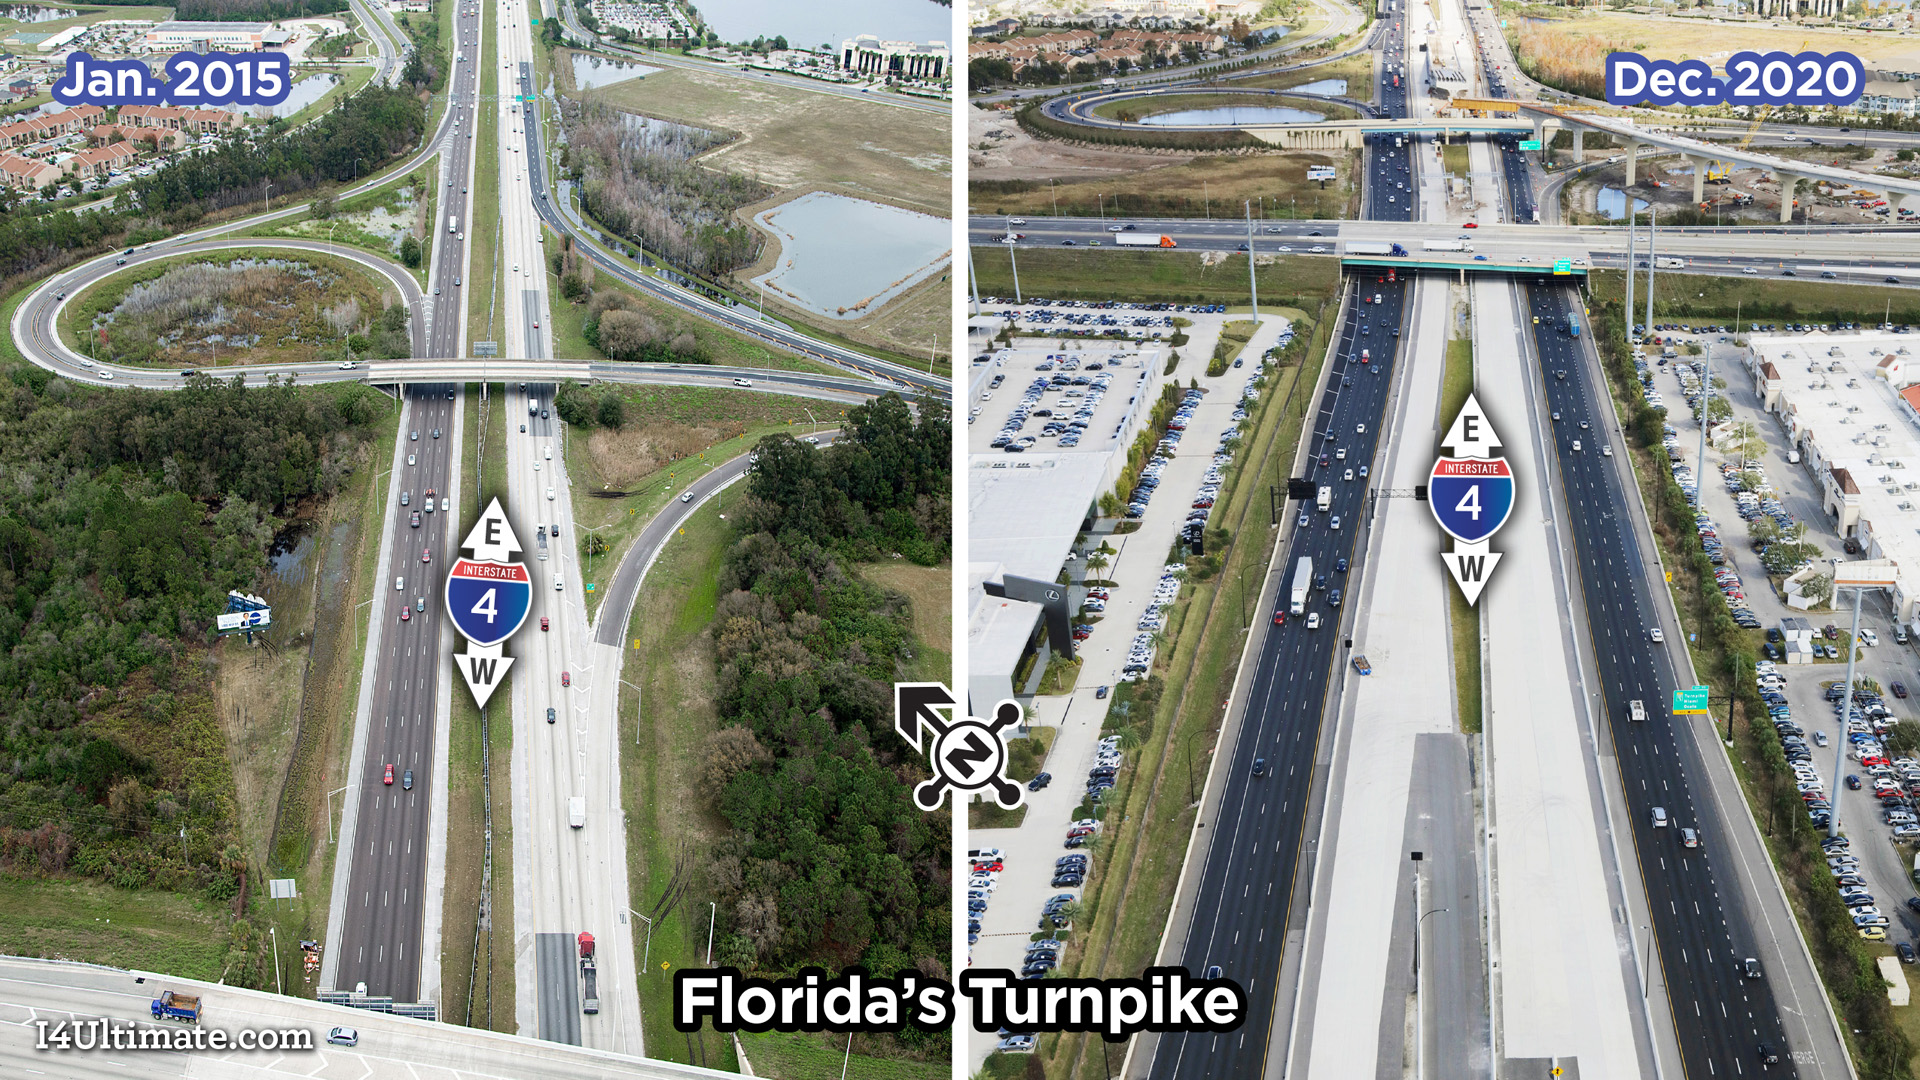 4738-I4Ultimate-GUL-campaign-images-20210212-04-Floridas-Turnpike